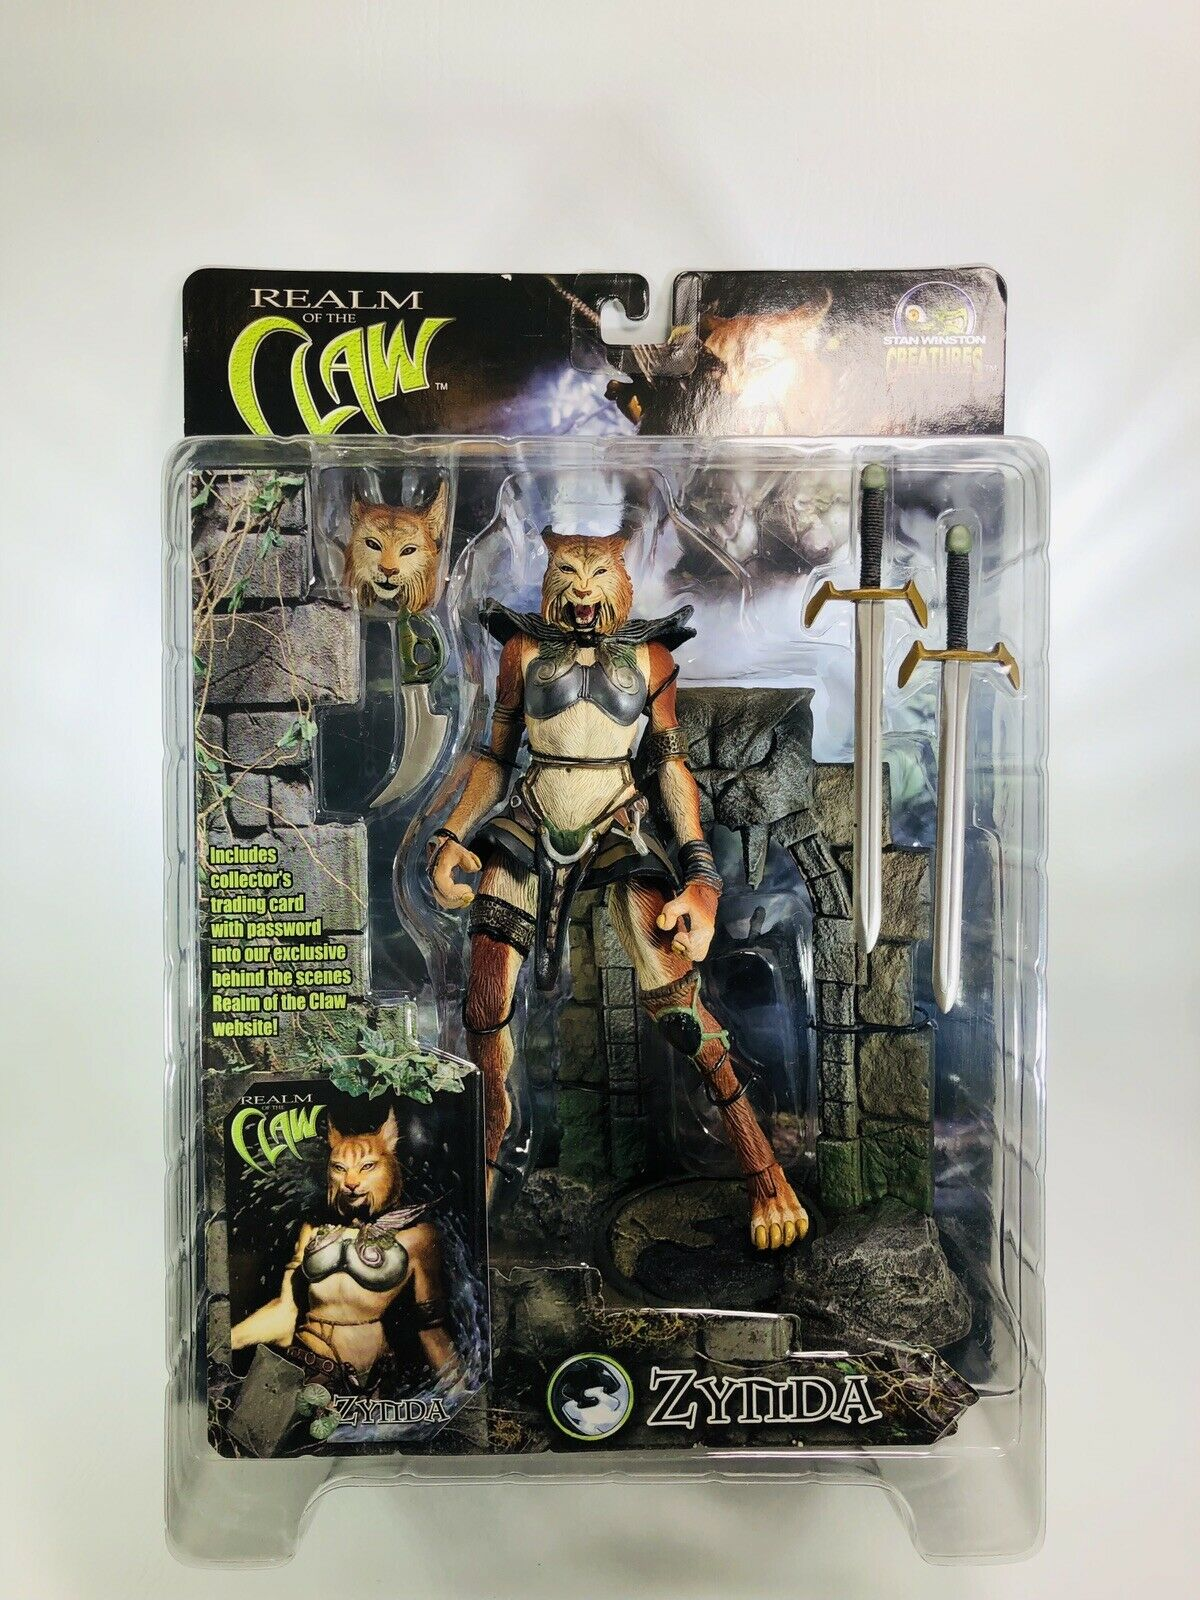 Stan Winston Creatures Zynda Realm Of The Claw Action Figure